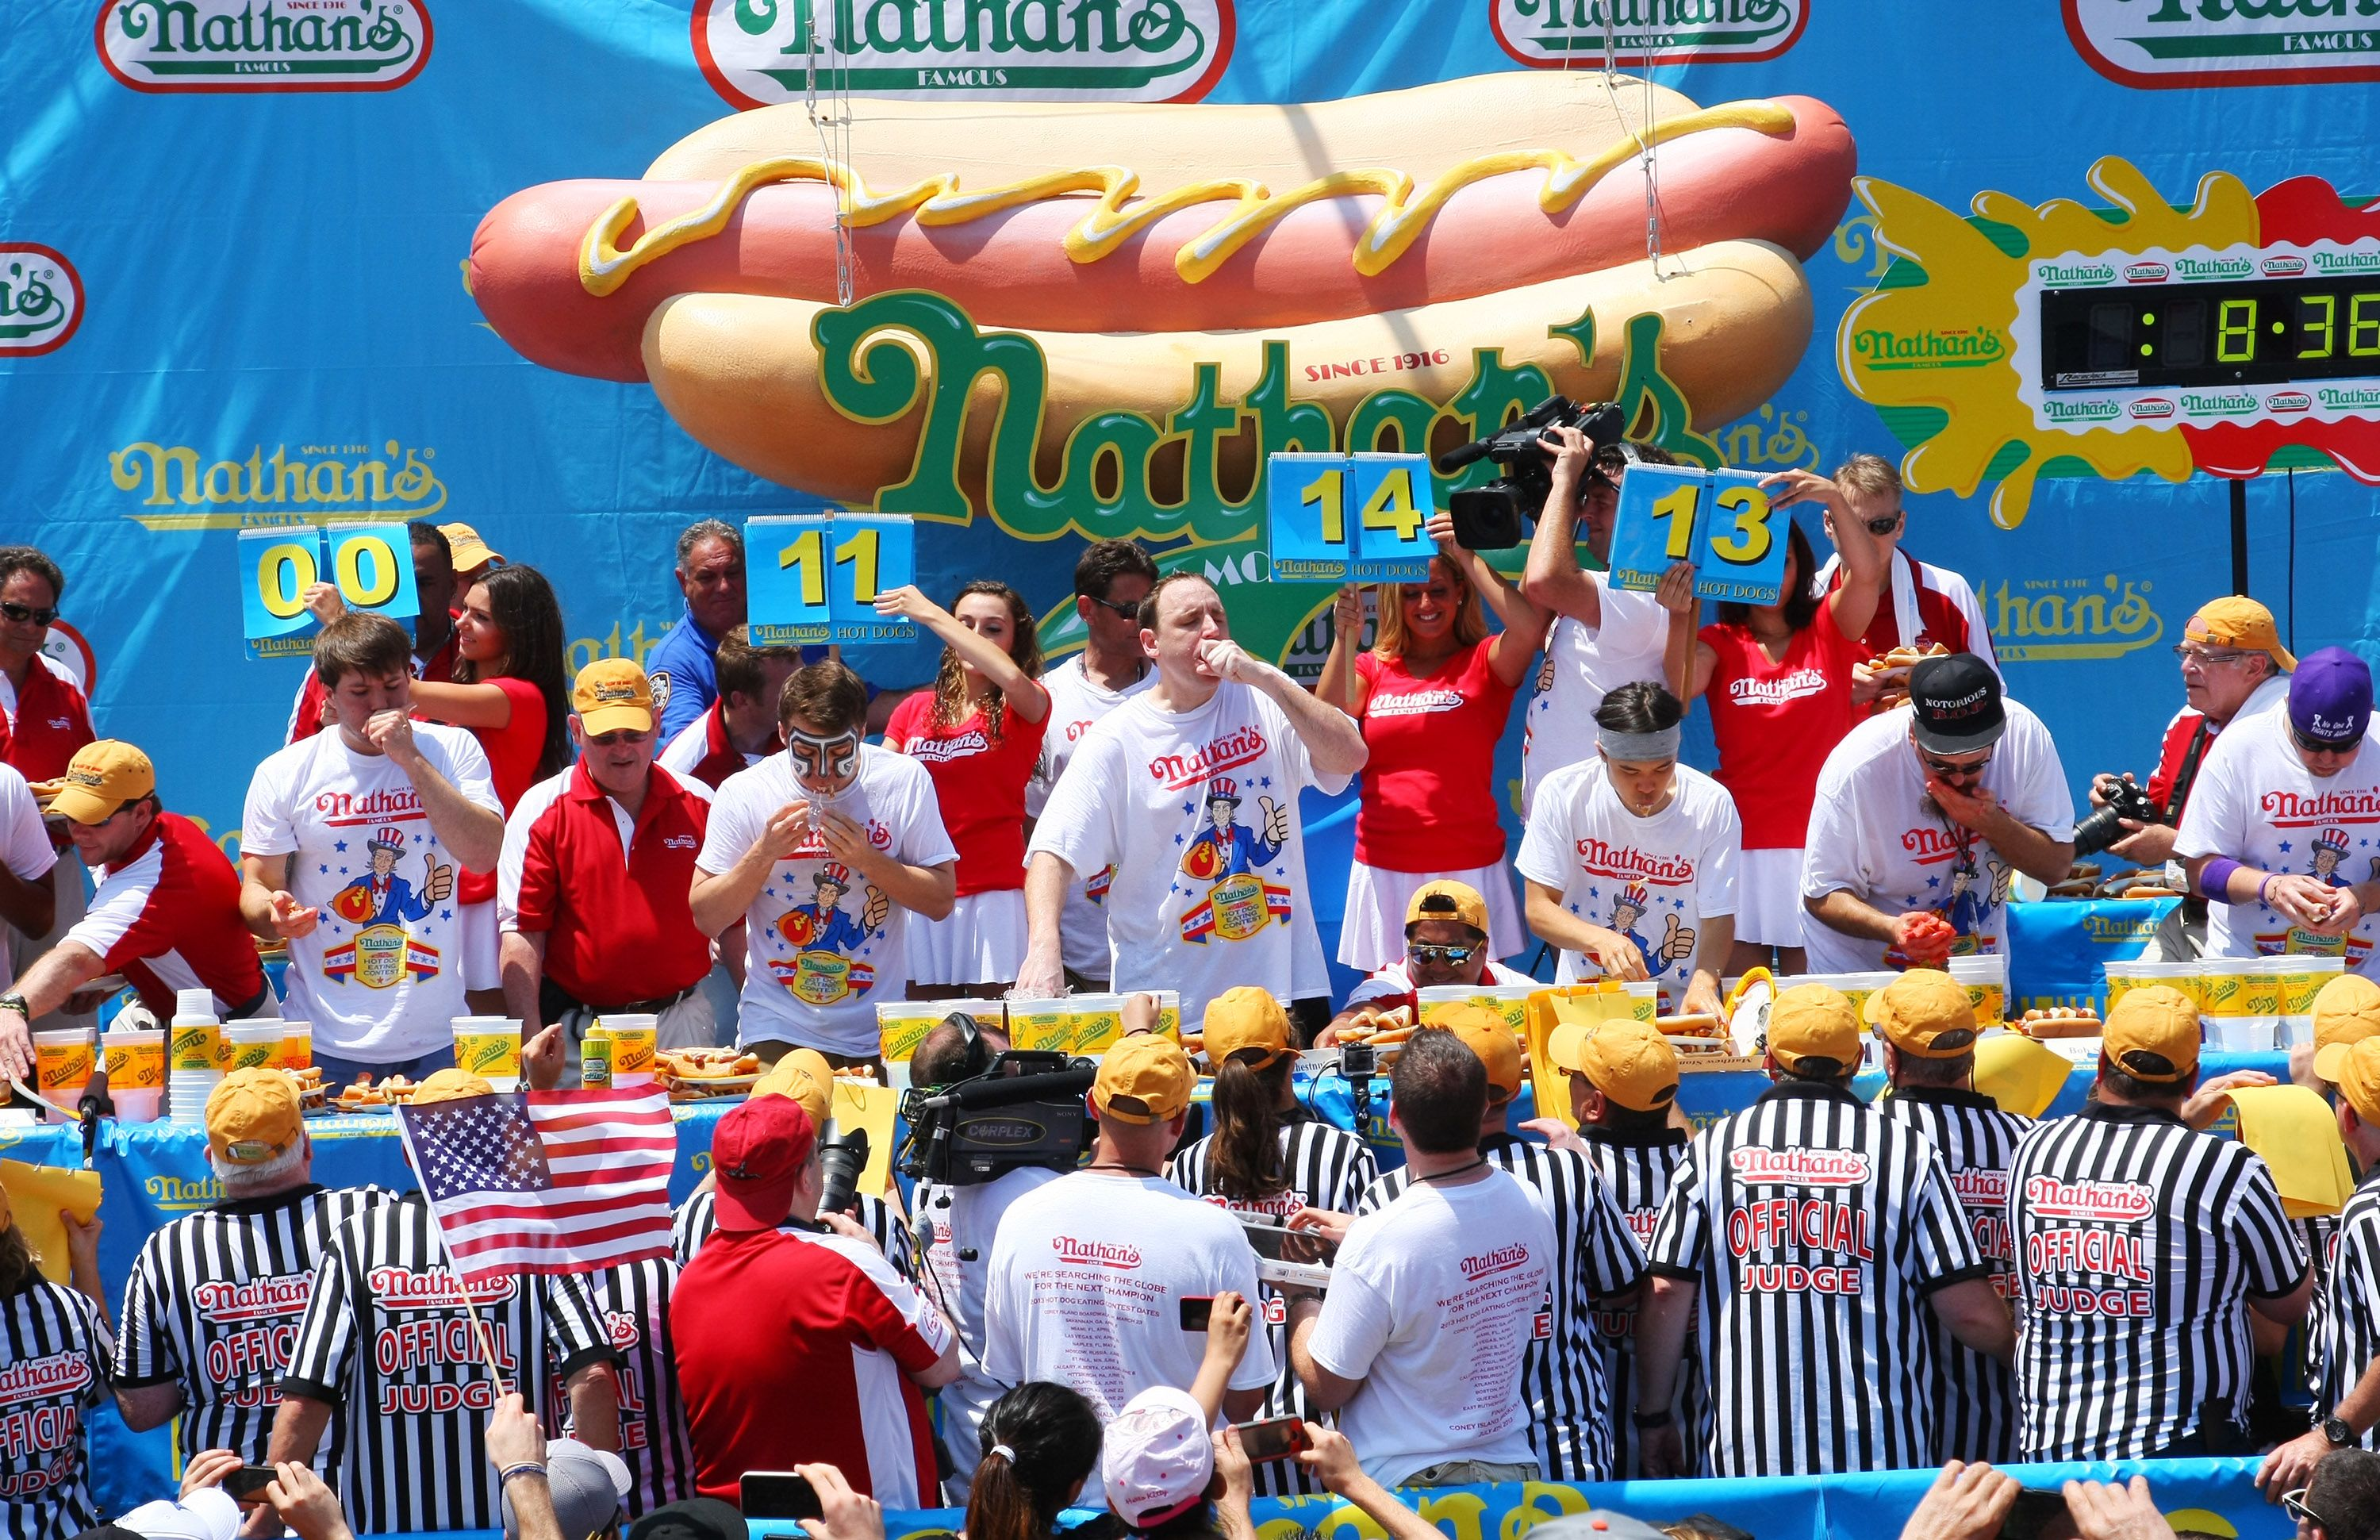 At Nathan's hot dog eating contest, there is only one star